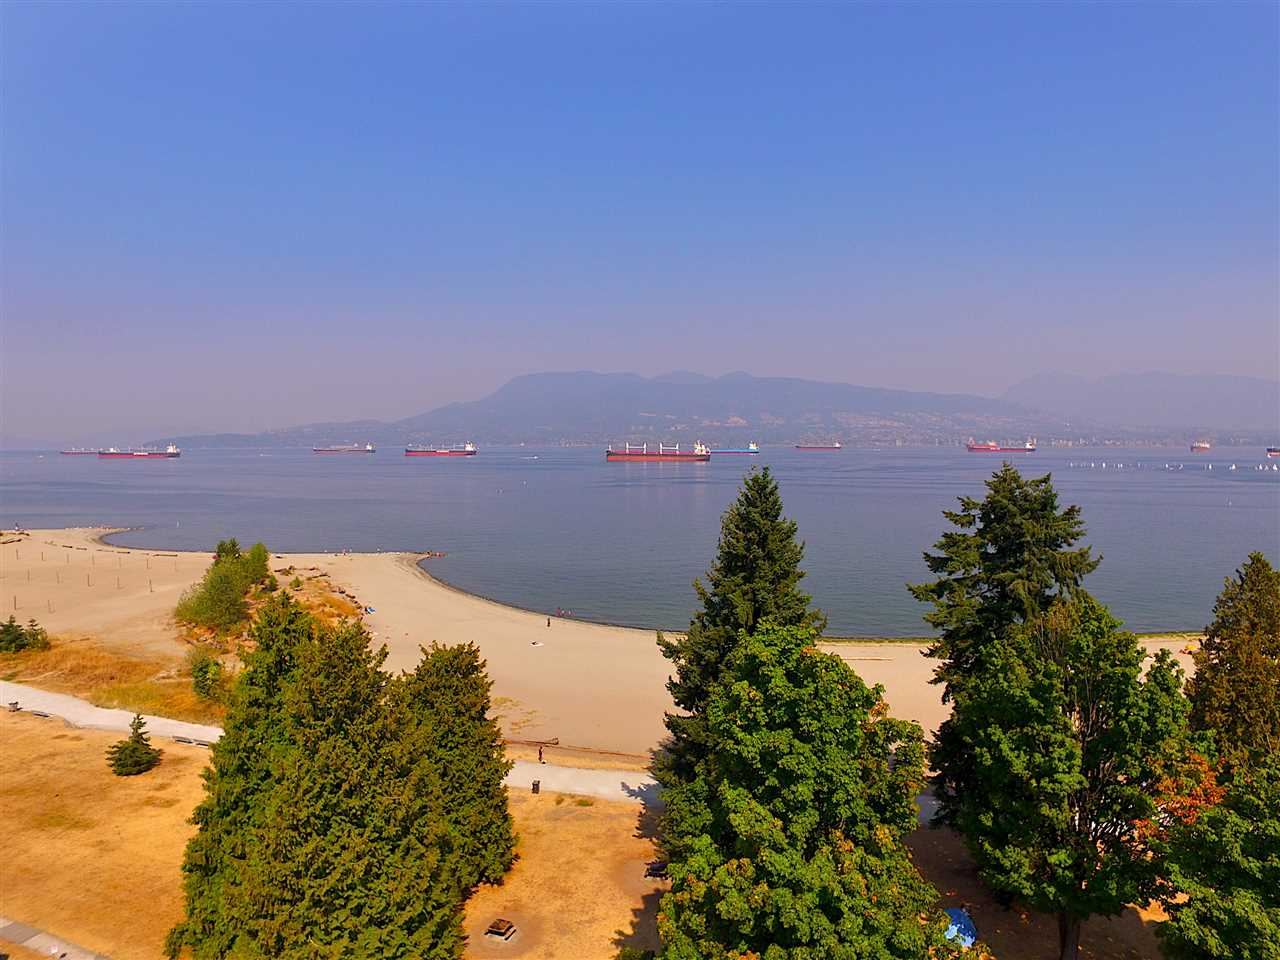 PANORAMIC WATER AND MOUNTAIN VIEWS IN PRIME POINT GREY. ONE OF THE ONLY 22 FREEHOLD BEACHFRONT PROPERTIES IN ALL OF VANCOUVER. Rare available 60 ft frontage across from the beach. This breathtaking contemporary 2017 renovated home features exceptional luxury: dynamic of spatial and graphic design by Evoke, fully Resort-Style landscaping, and amazing work and top materials make the home ultimate. Great features include custom designed millwork, radiant heating, floating stairs, Hunter Douglas automated blinds, metal roof, Alaskan Yellow Cedar shingles, control 4 system... Steps to beach, forest. Close to BC's top schools: WPGA, Lord Byng, UBC, shopping, golf courses. TRULY ELEGANT AND TIMELESS MASTERPIECE! Open House Sun Oct. 22th  between 2-4pm